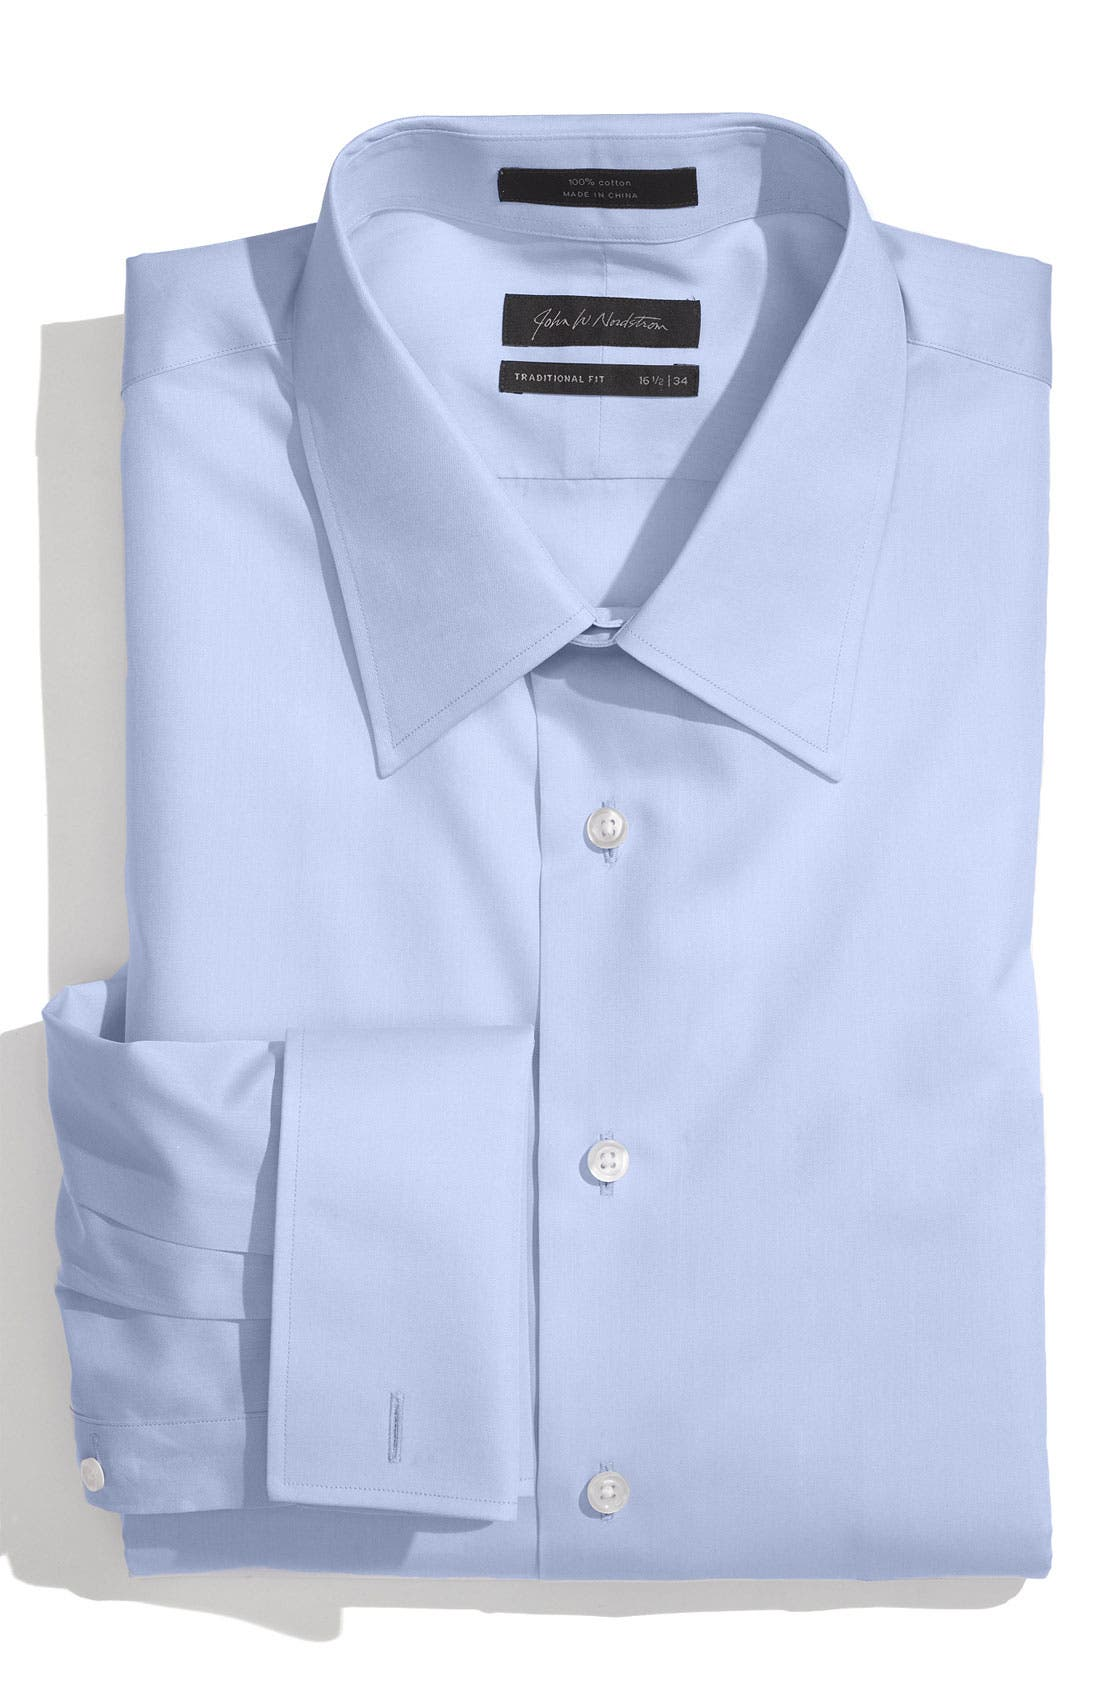 Main Image - John W. Nordstrom® Traditional Fit French Cuff Dress Shirt